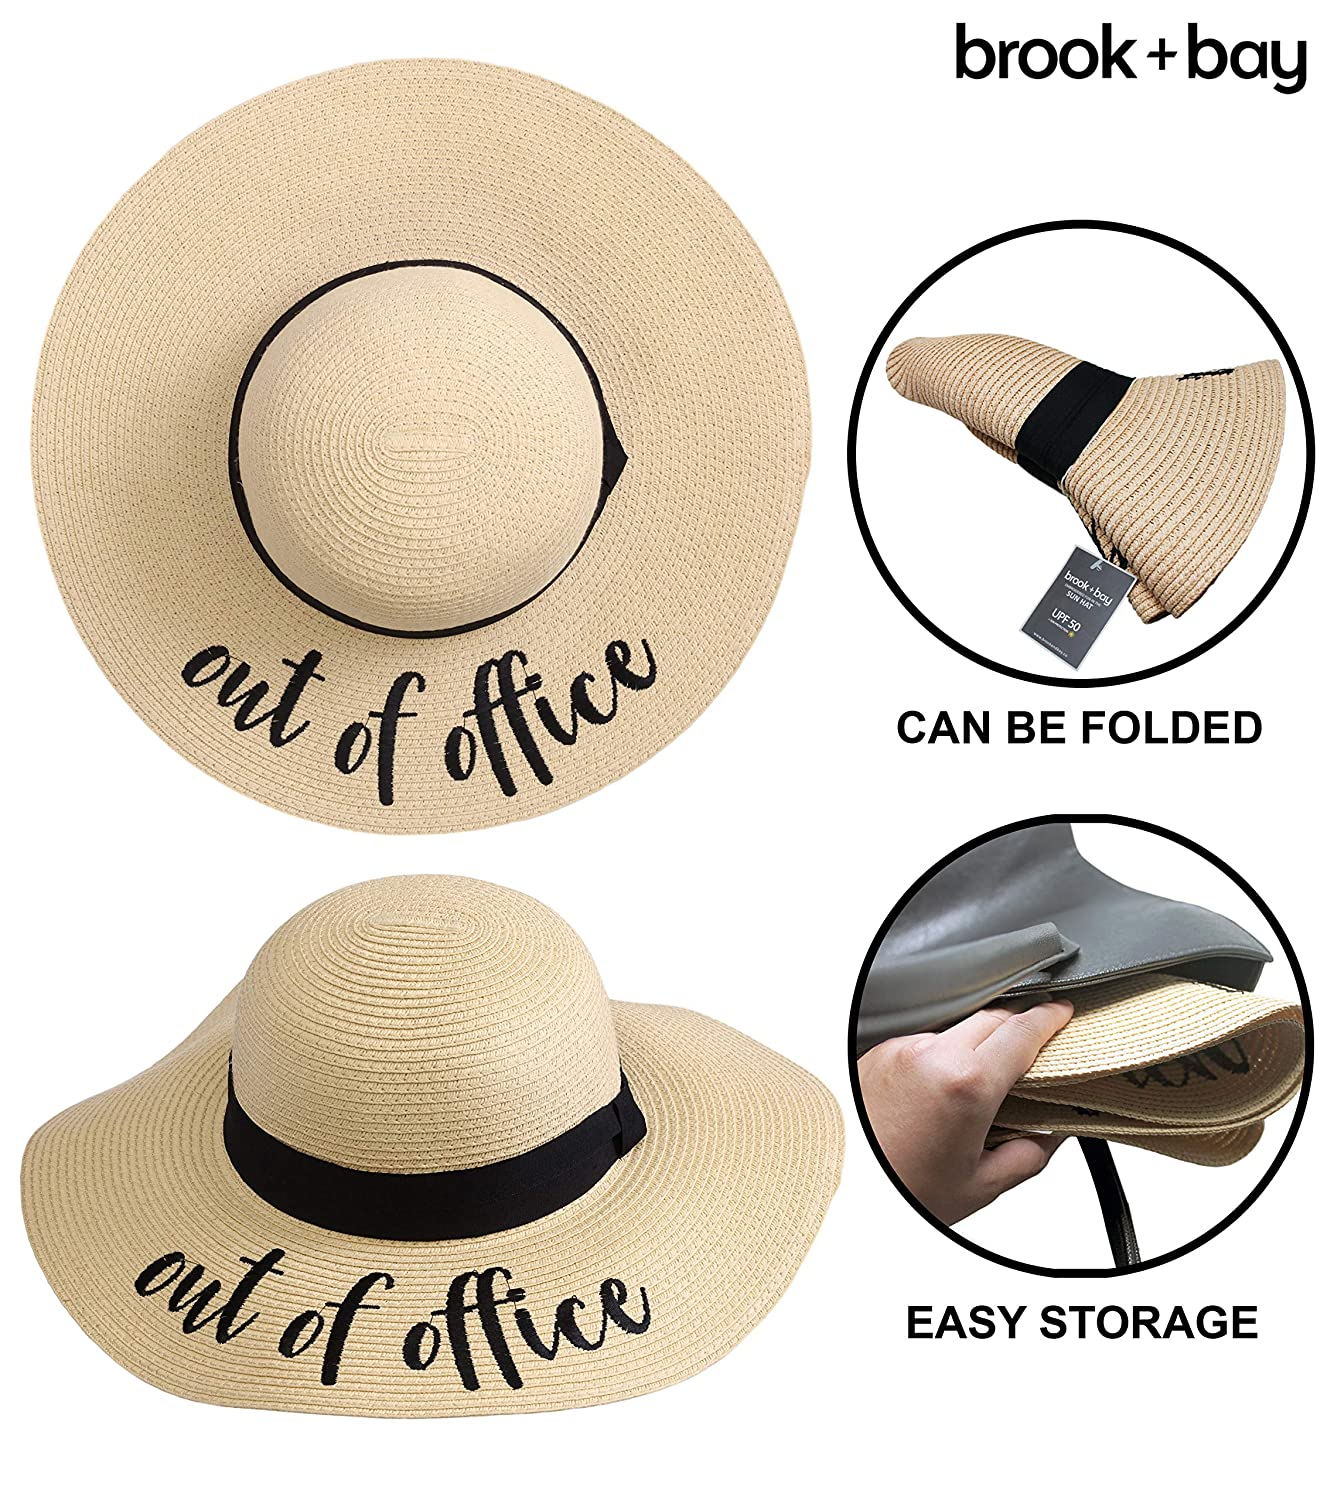 Large Brim Embroidered Summer Straw Hat for Vacation Cruises Honeymoon /& Travel Floppy Beach Sun Hat for Women